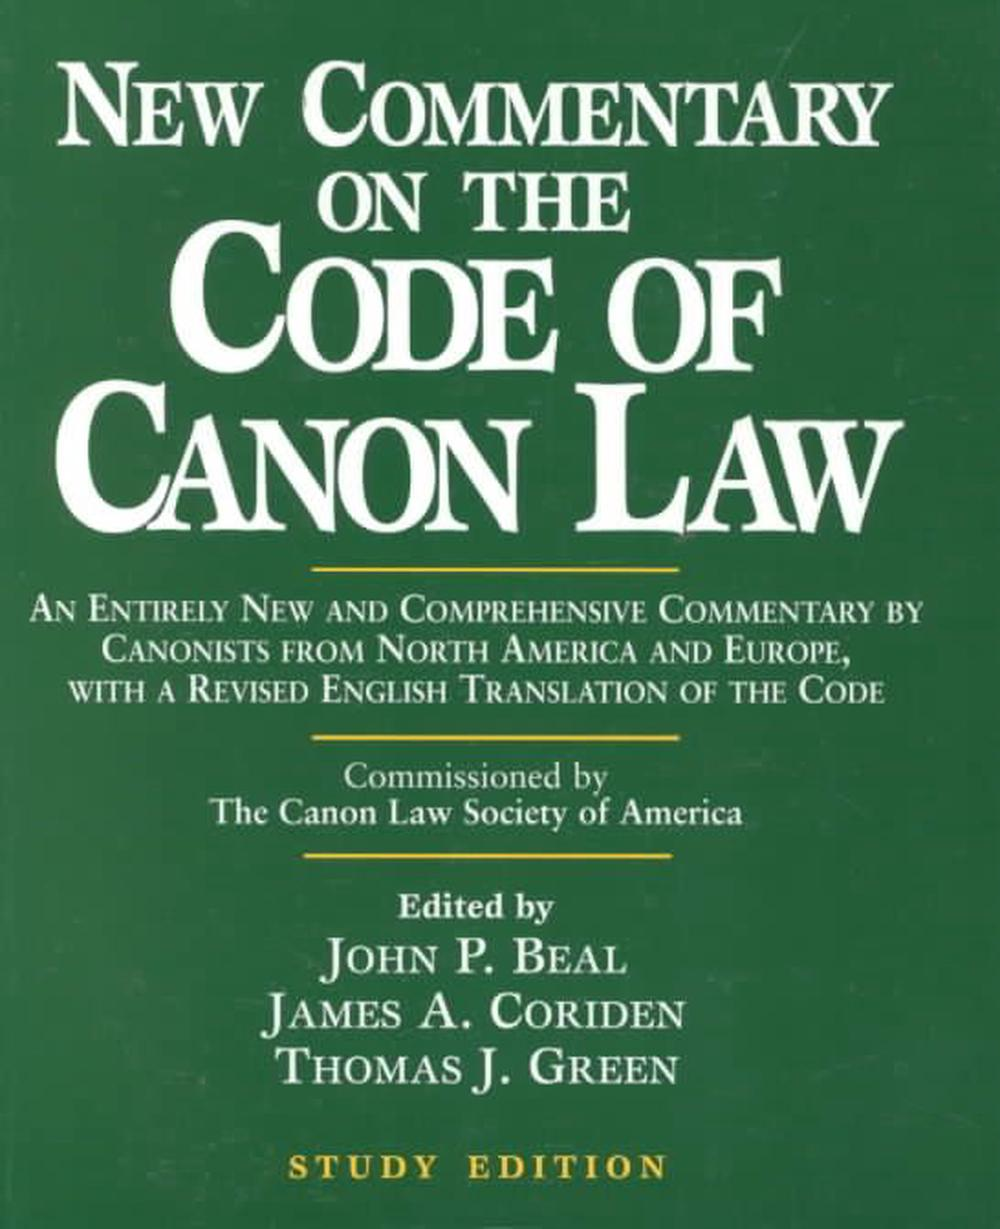 New Commentary on the Code of Canon Law: Study Edition by John P. Beal, ISBN: 9780809140664